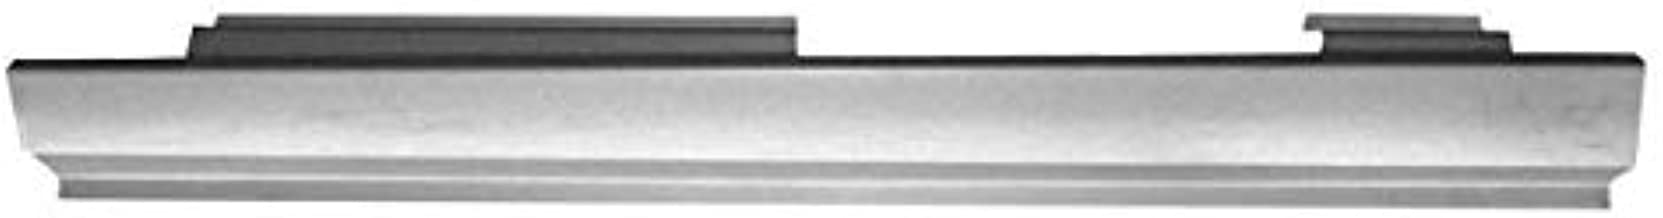 New Replacement Driver Side Slip-On Style Rocker Panel OEM Quality